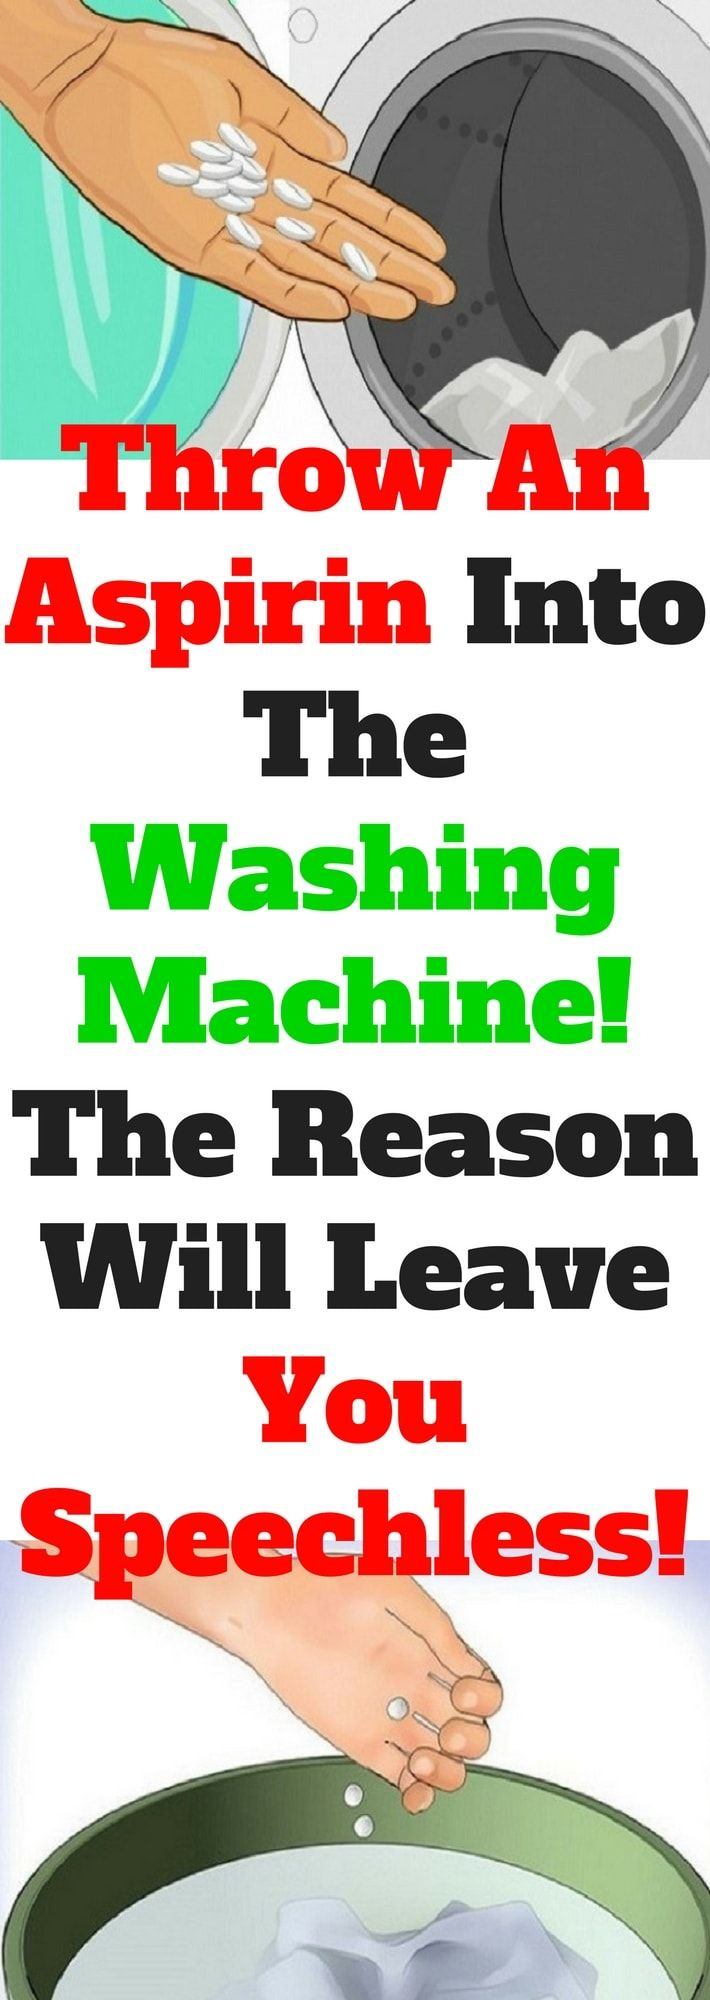 Throw An Aspirin Into The Washing Machine! The Reason Will Leave You Speechless! (Need to know)